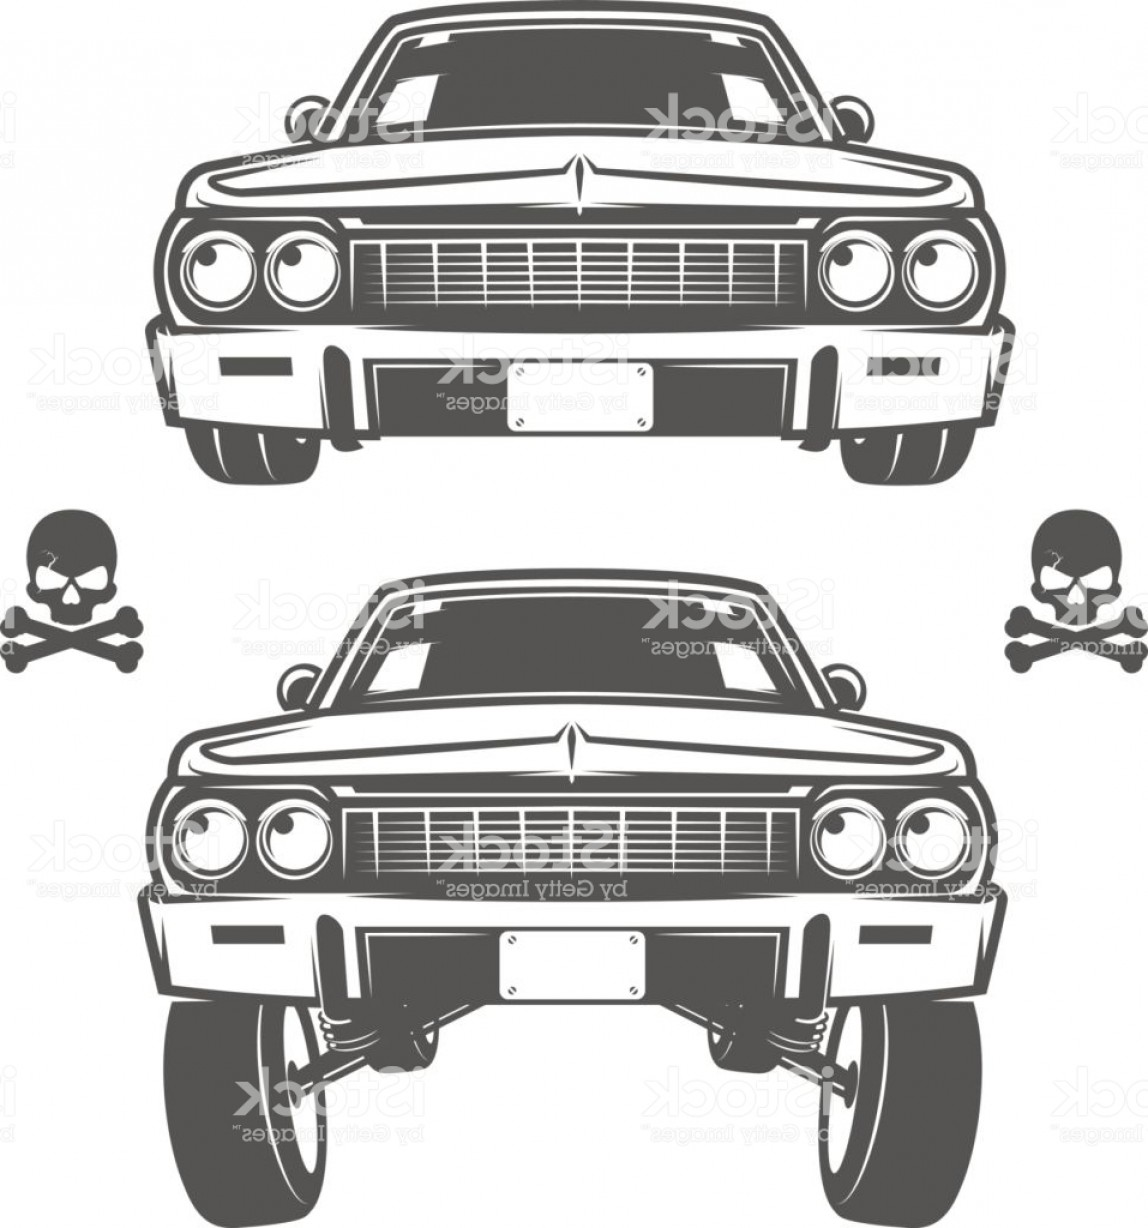 Lowrider Vector: Set Of Lowrider Cars Lowrider Lowrider Machine Lowrider For Emblems And Design Gm